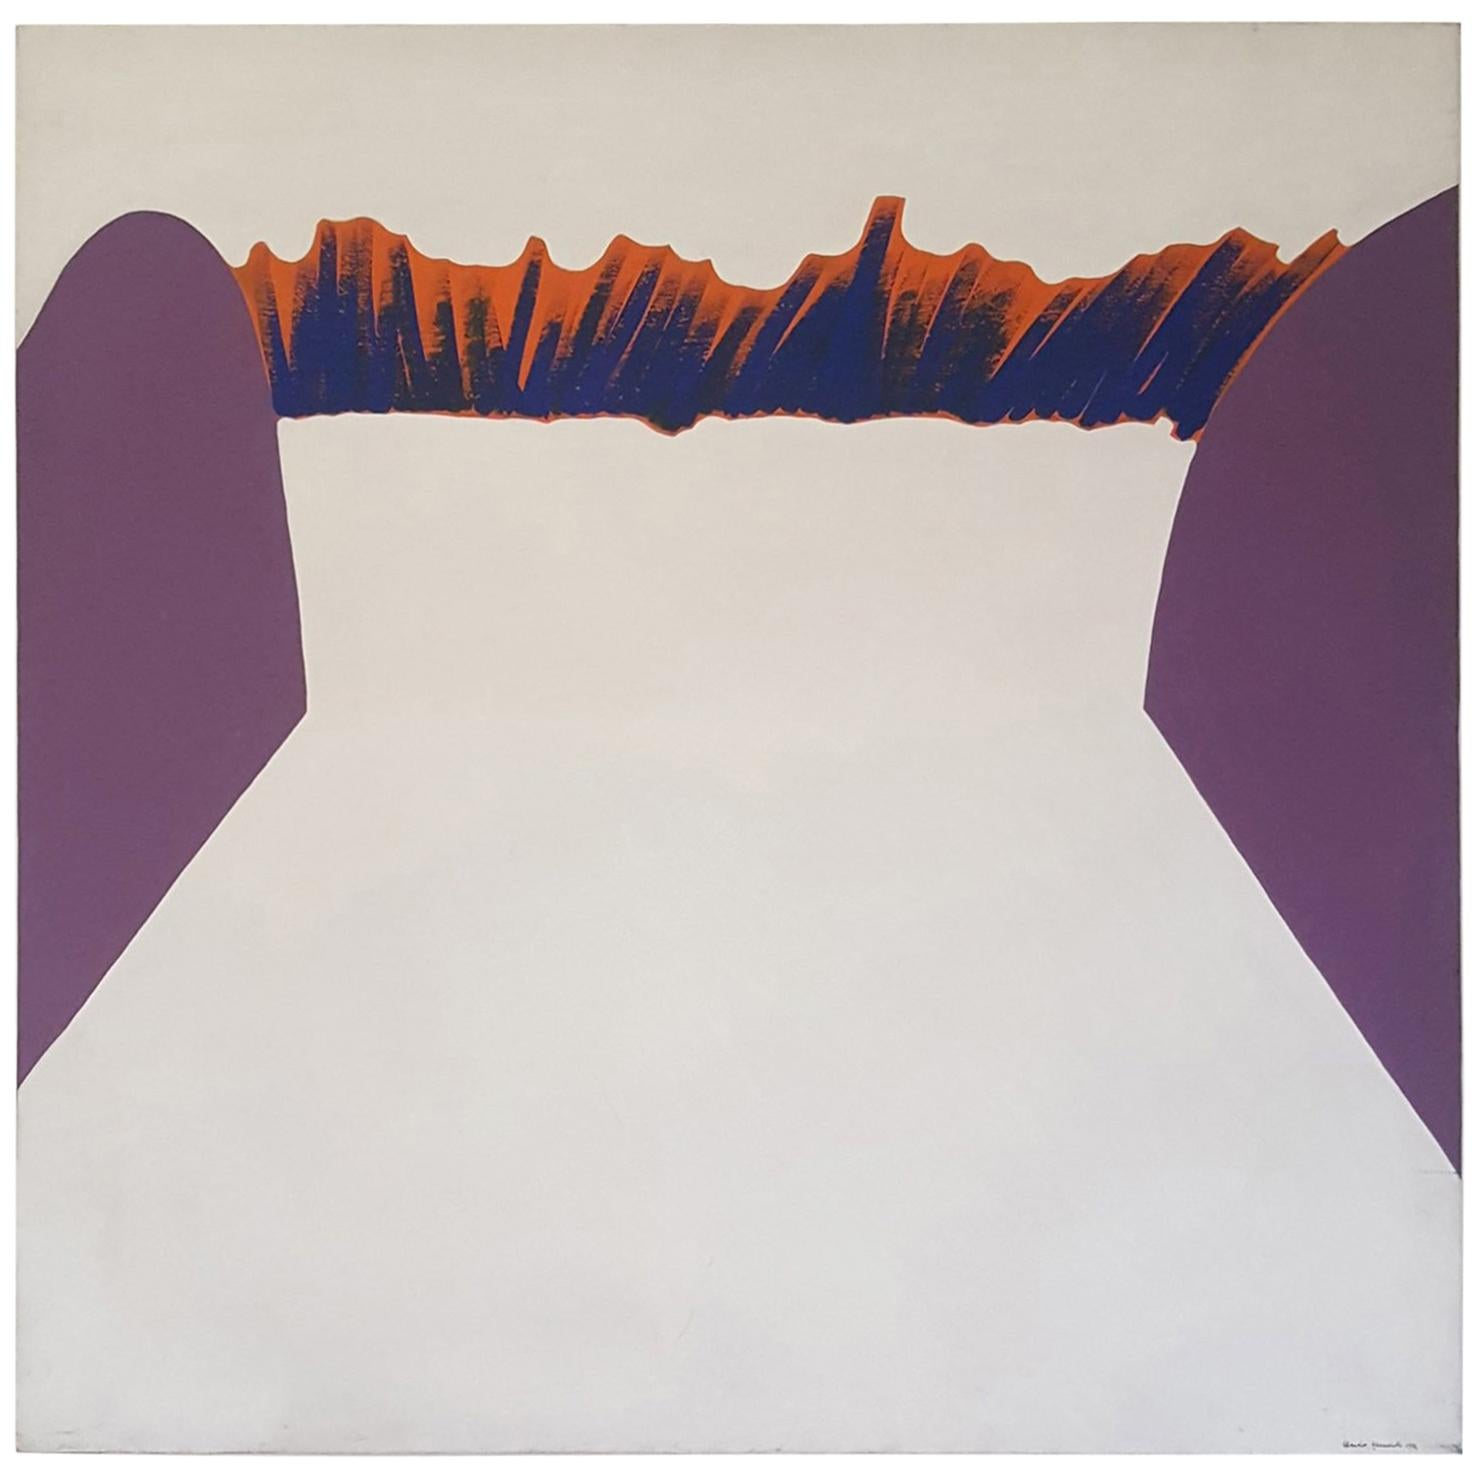 Midcentury Modern Abstract Painting by Claudio Granaroli, Signed and Dated, 1972